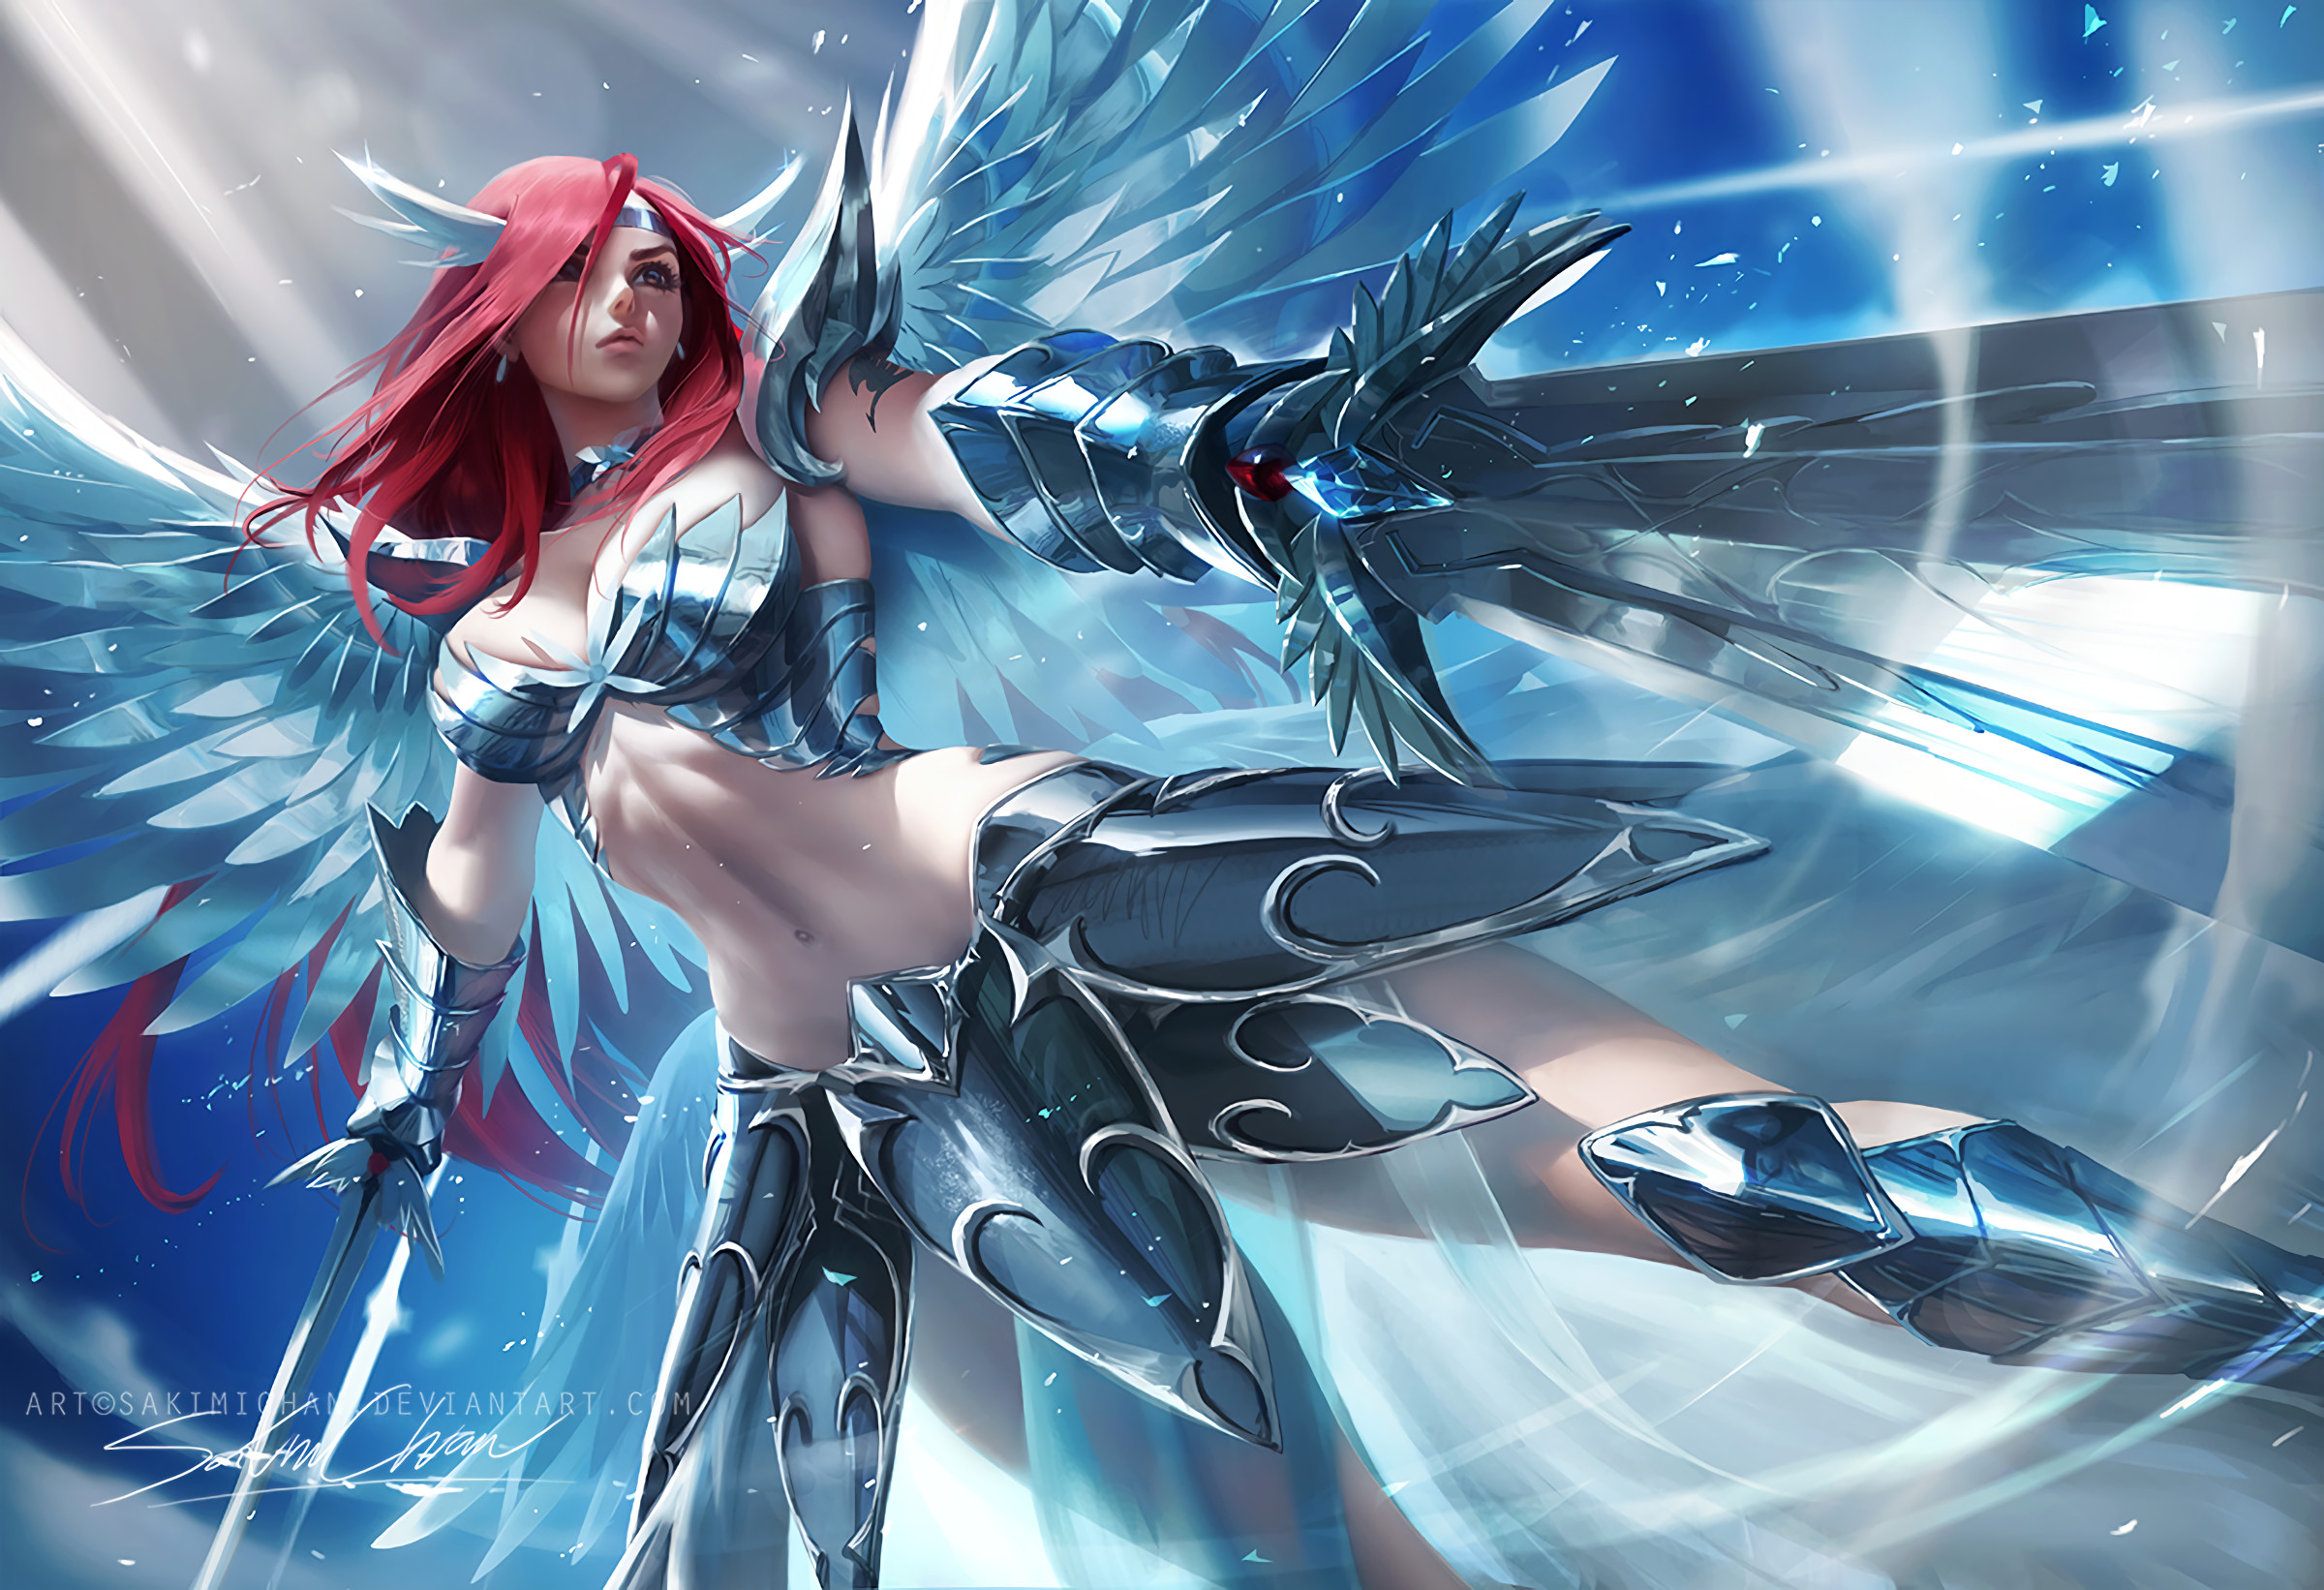 Fairy Tail Erza Scarlet Wallpaper (72+ images)